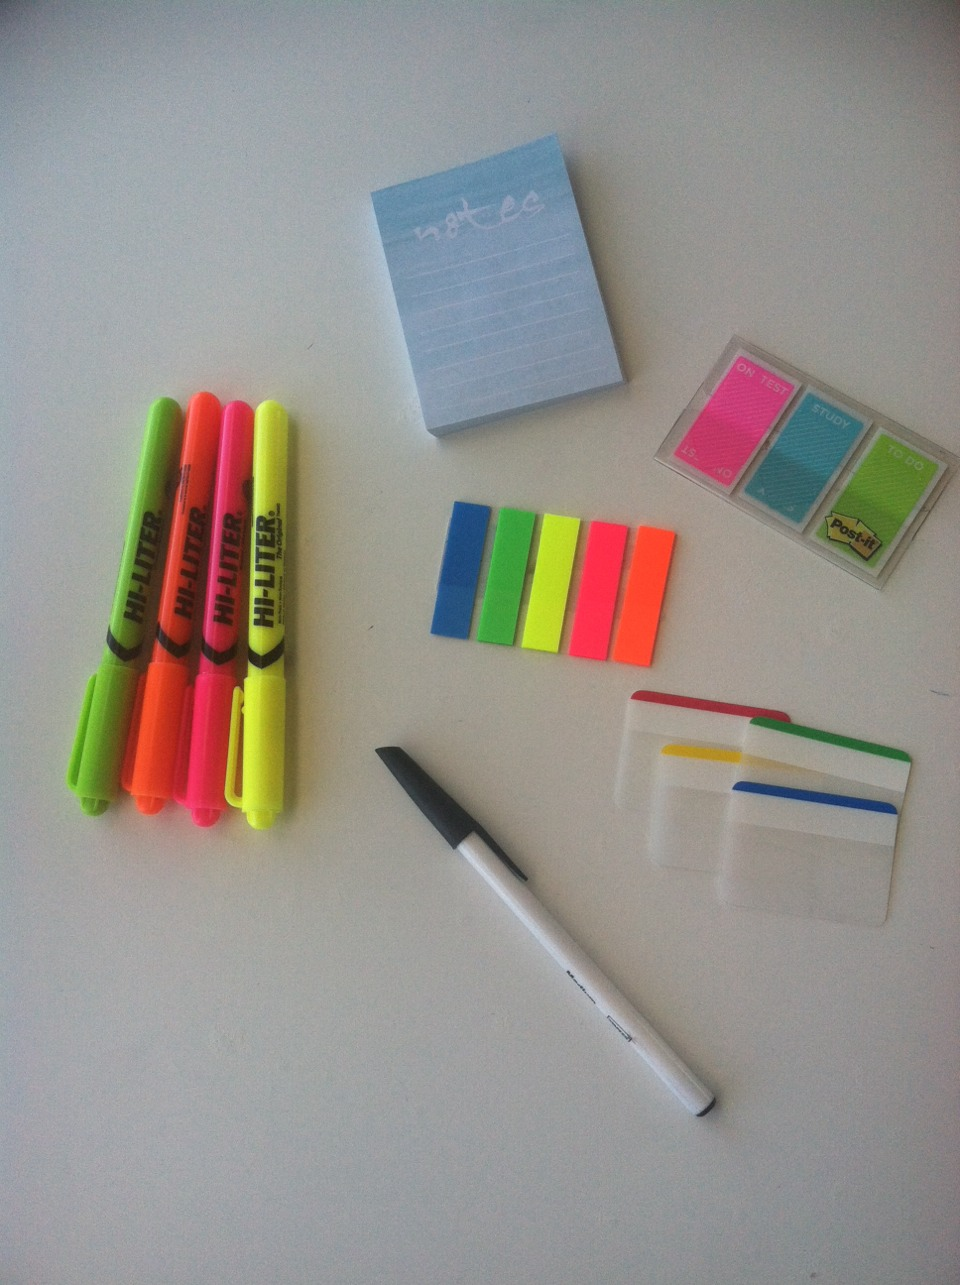 These are the products I use a lot for note taking. As you can see I really like post it's. I found all of these at Target.